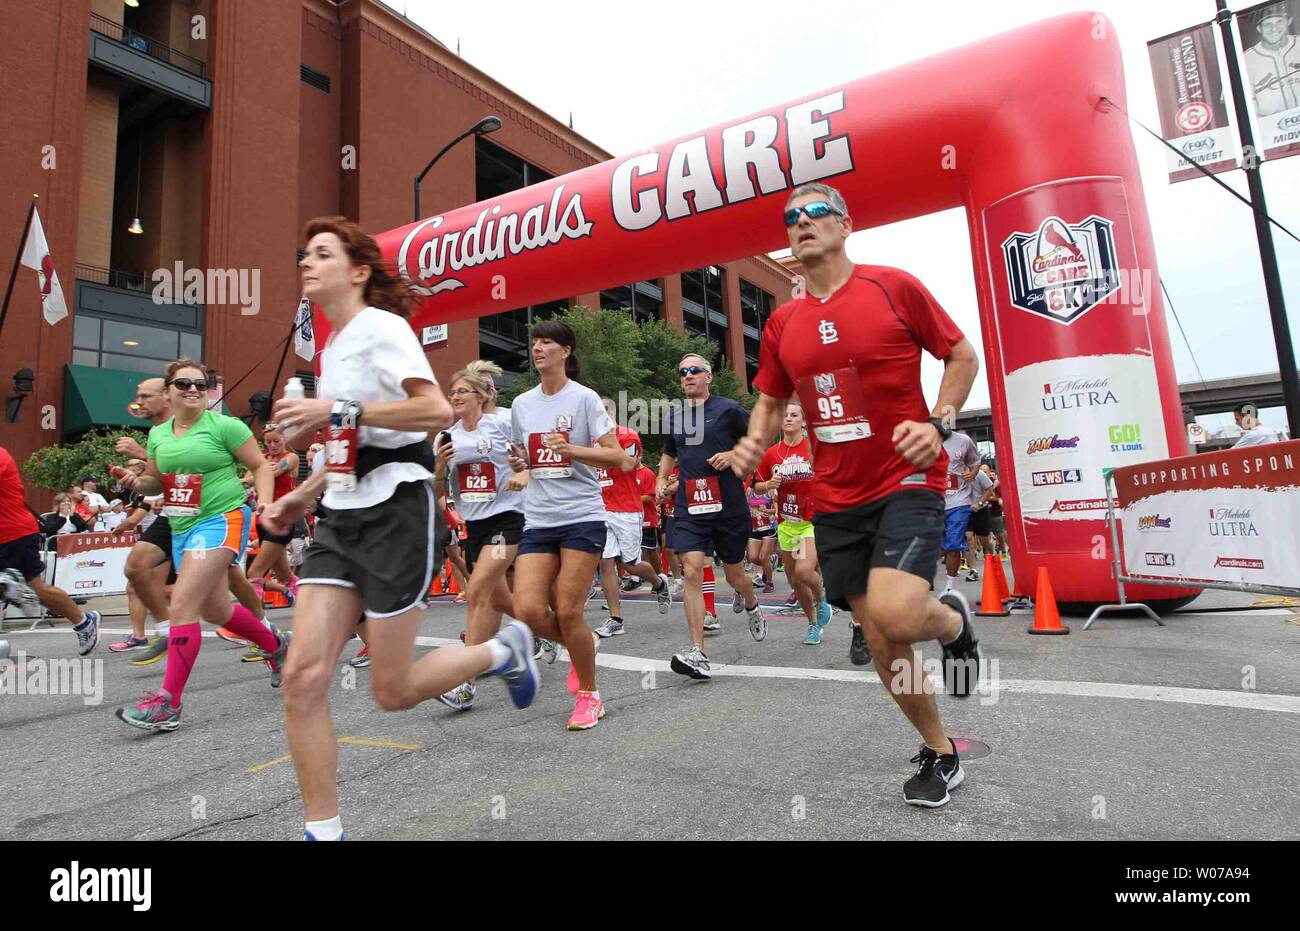 Nearly a thousand runners take off at the start of the fourth annual 6K run - named in honor of Stan Musial at Busch Stadium in St. Louis on August 18, 2013.  The event helped raise more than $100,000 for the St. Louis Cardinals charitable foundation.     UPI/Bill Greenblatt - Stock Image